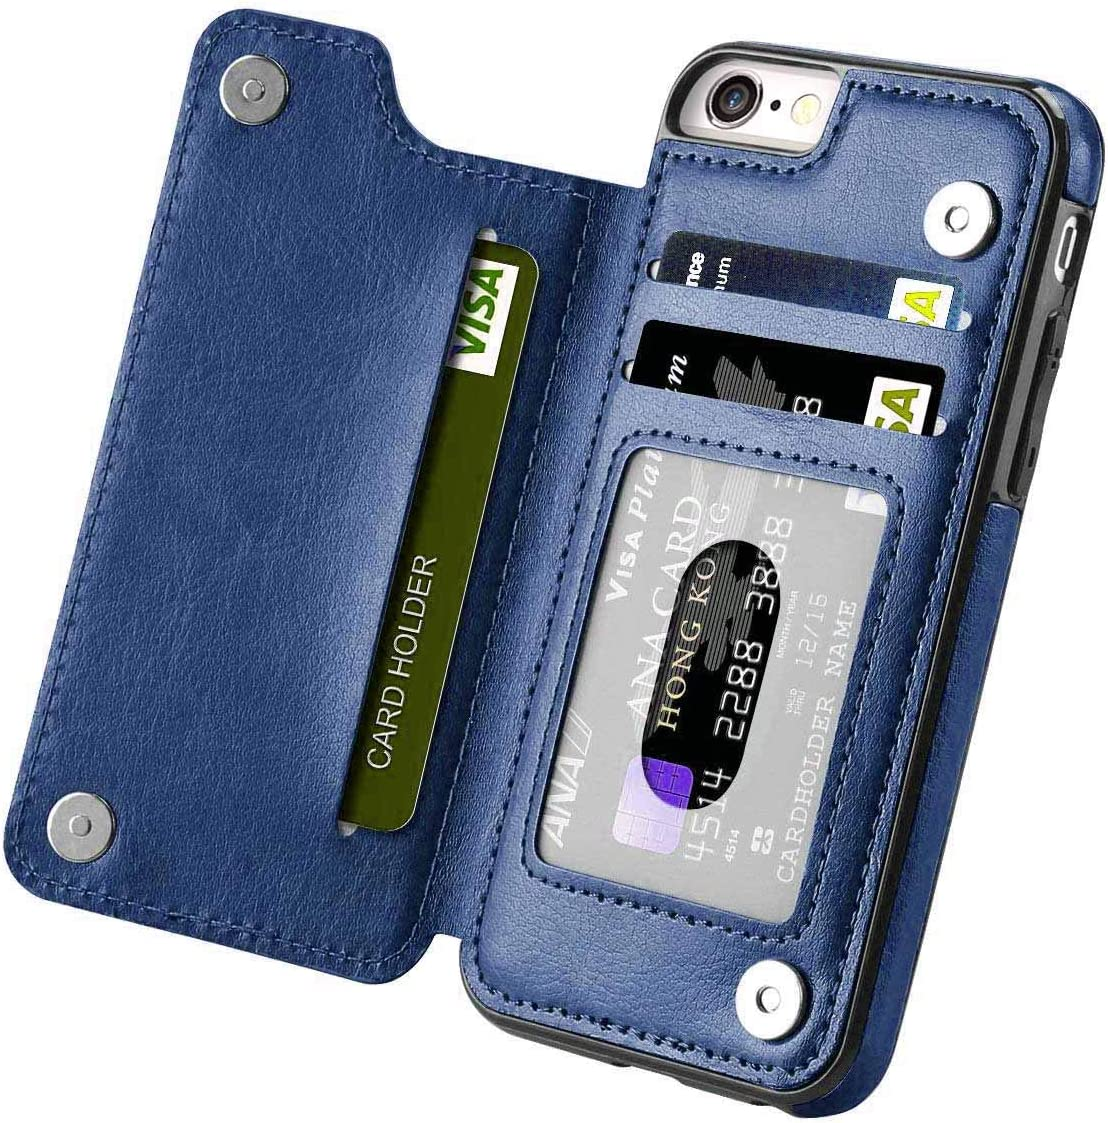 i-Dawn iPhone 6s/6 Wallet Case,iPhone 6/6S Case for Girls Women Men, Compatible with iPhone 6S/6 Case Wallet with Card Holder&Stand iPhone 6S Case Slim Fit and Durable Premium Leather Cover -Blue